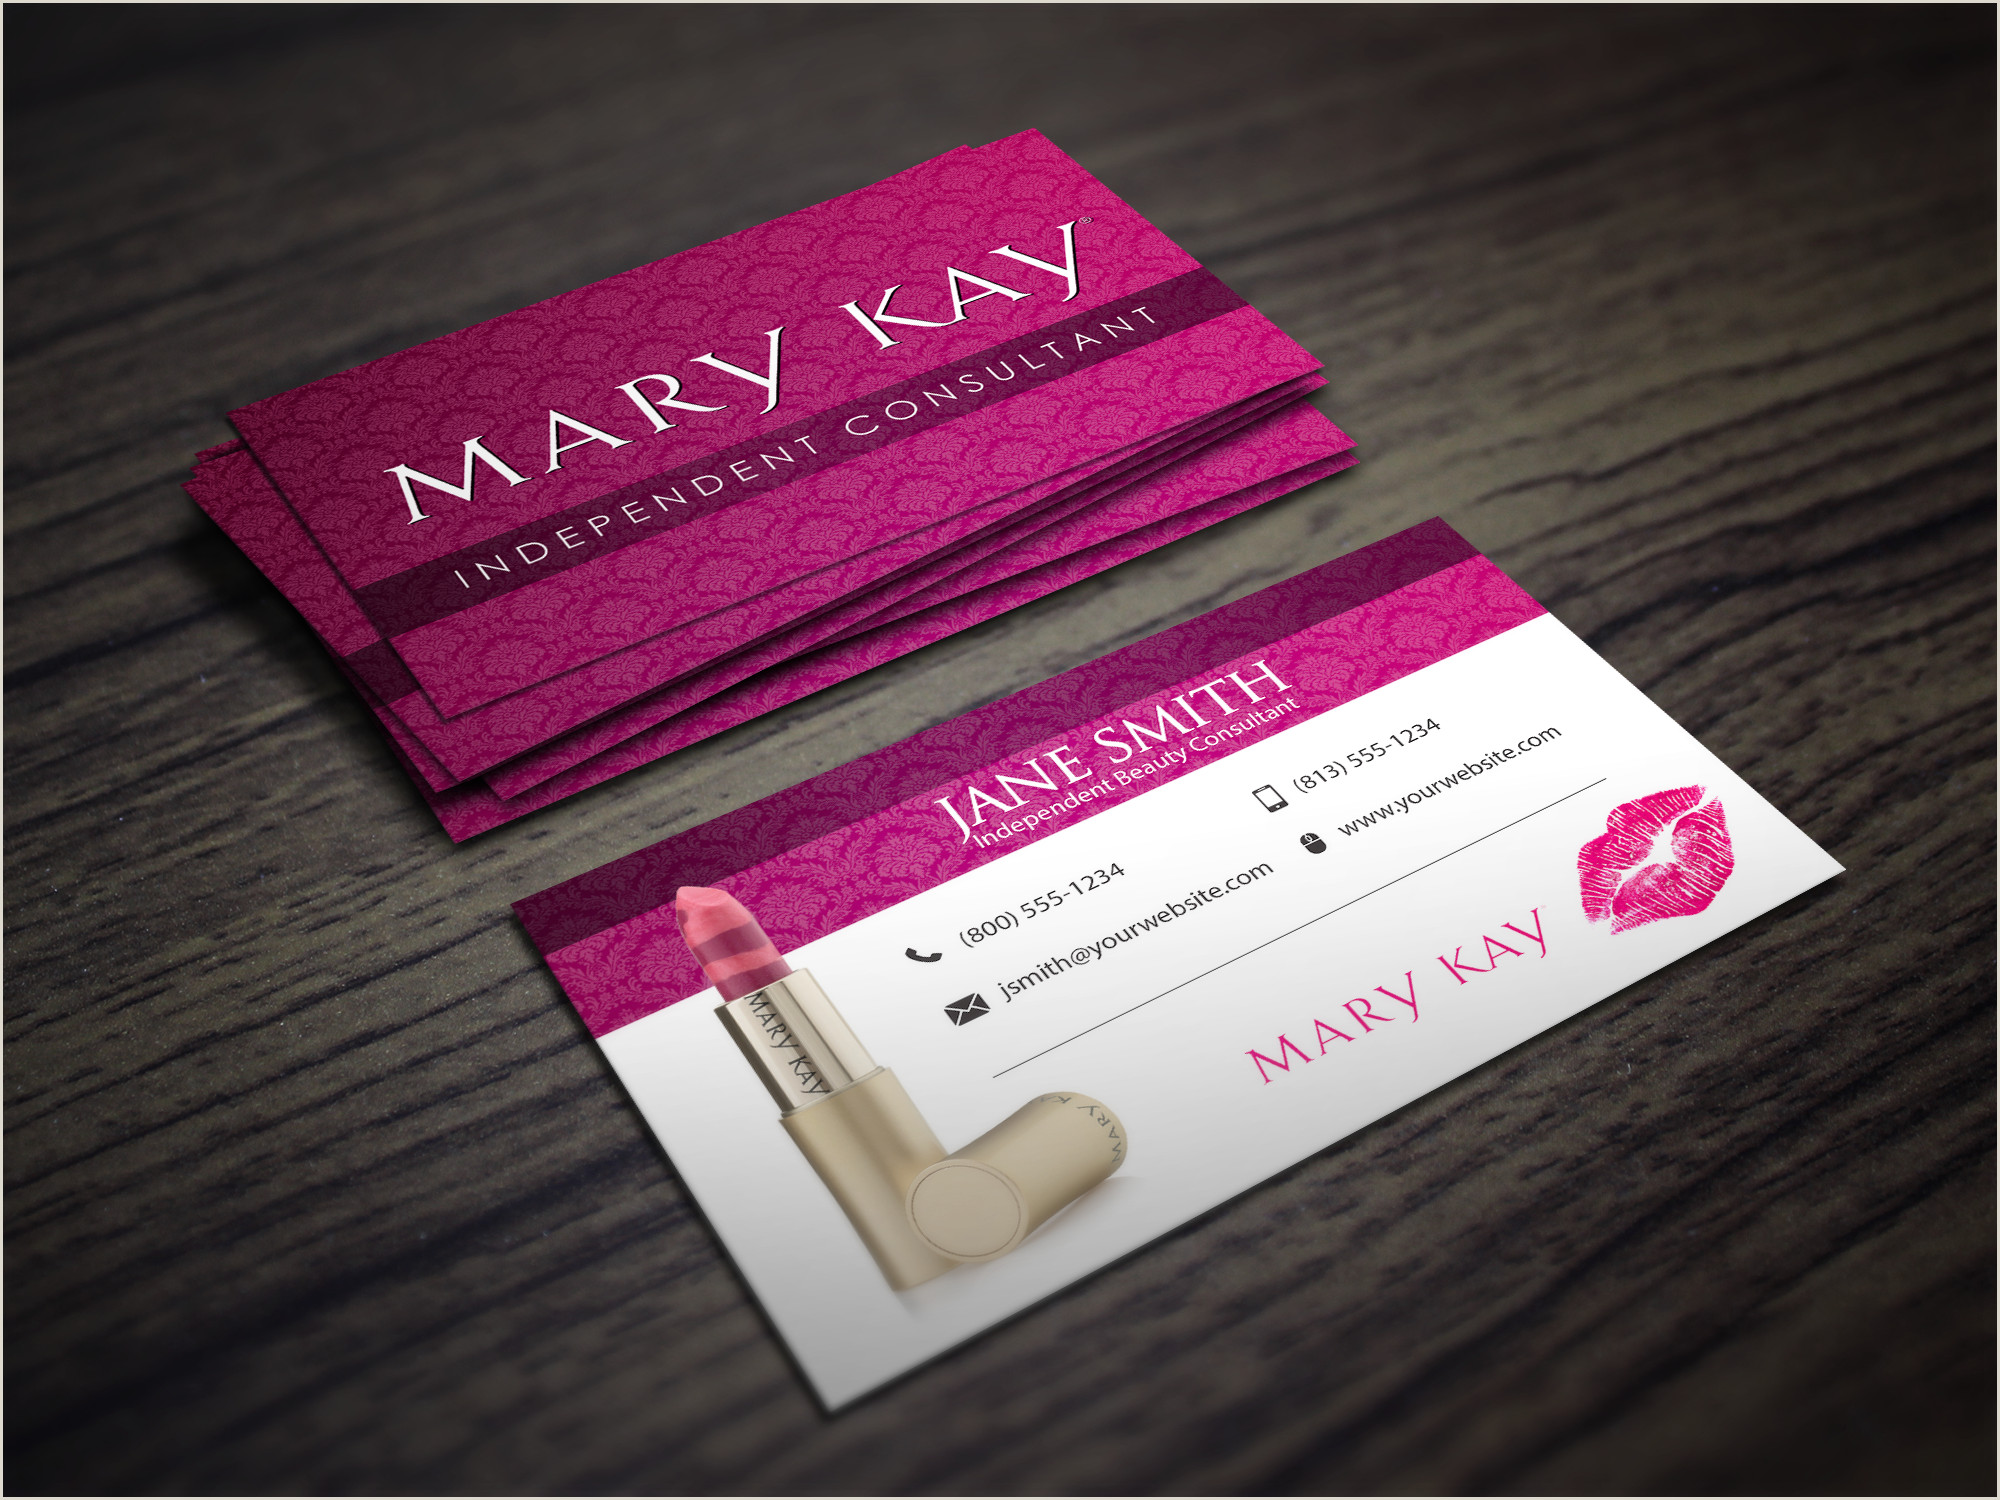 Mary Kay Cosmetics Business Cards Unique Mary Kay Business Cards Free Shipping